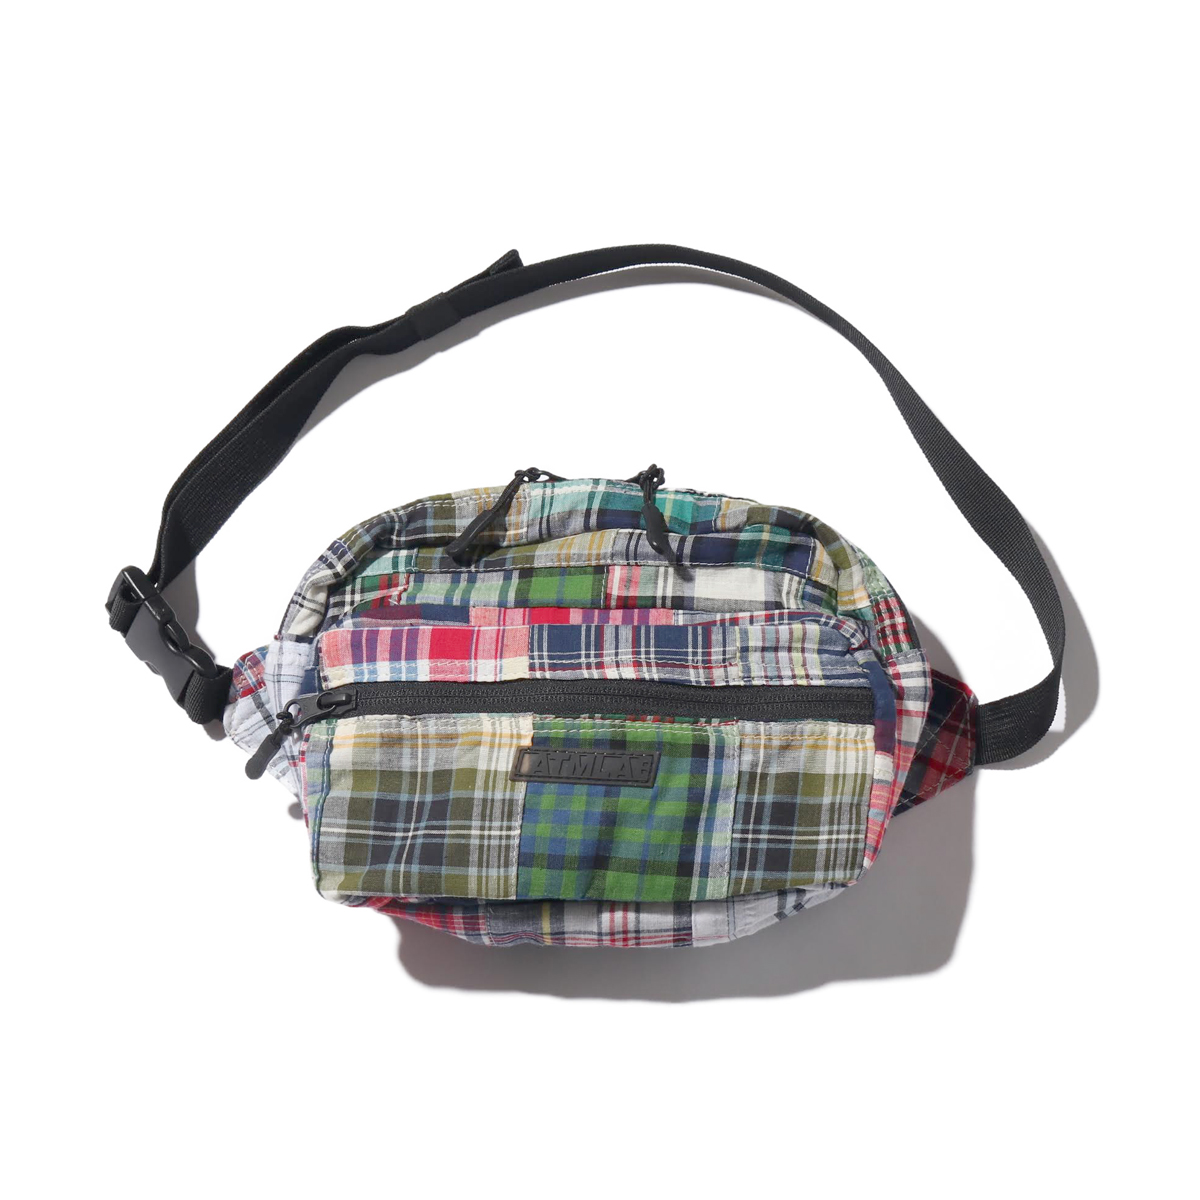 ATMOS LAB PATCHWORK WAIIST BAG